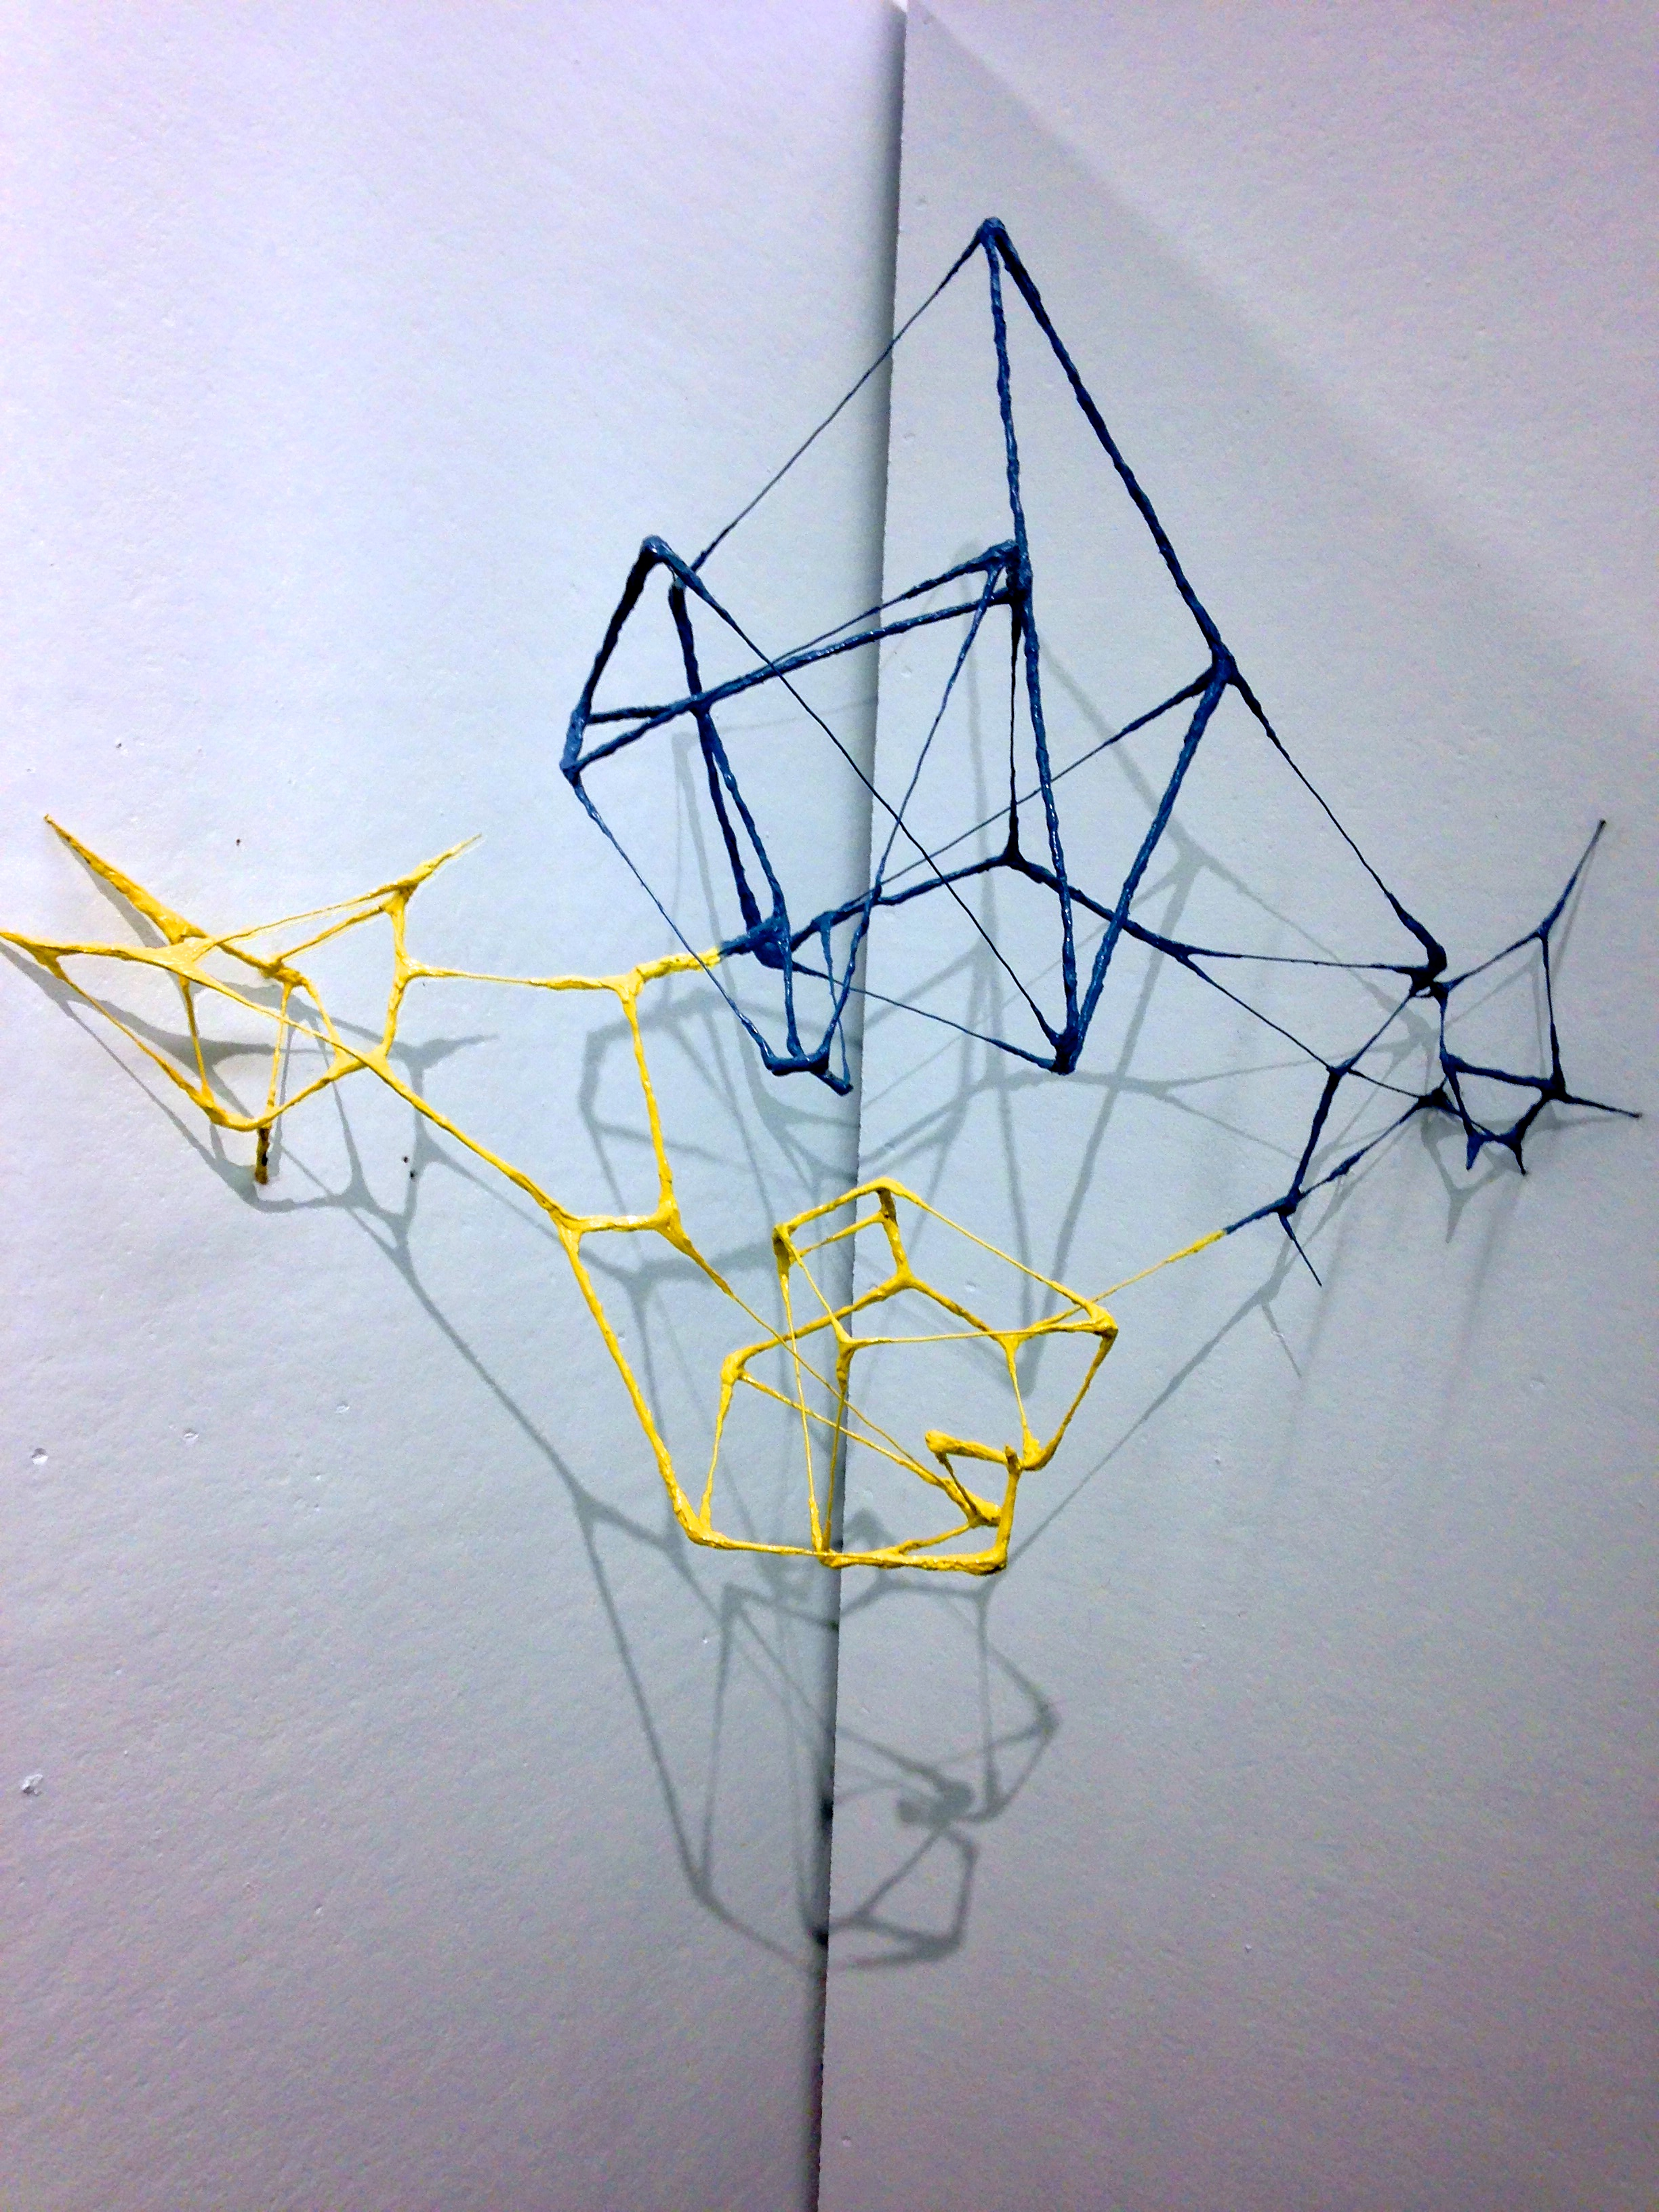 """Inversion , hot glue, wire, and spray paint       0   0   1   35   201   Dartmouth College   1   1   235   14.0                   Normal   0           false   false   false     EN-US   JA   X-NONE                                                                                                                                                                                                                                                                                                                                                                       /* Style Definitions */ table.MsoNormalTable {mso-style-name:""""Table Normal""""; mso-tstyle-rowband-size:0; mso-tstyle-colband-size:0; mso-style-noshow:yes; mso-style-priority:99; mso-style-parent:""""""""; mso-padding-alt:0in 5.4pt 0in 5.4pt; mso-para-margin:0in; mso-para-margin-bottom:.0001pt; mso-pagination:widow-orphan; font-size:12.0pt; font-family:Cambria; mso-ascii-font-family:Cambria; mso-ascii-theme-font:minor-latin; mso-hansi-font-family:Cambria; mso-hansi-theme-font:minor-latin;}   This corner-mounted wall piece attemps to create a mini-environment through emulating shifting geormetric forms and voronoi map fractals. The end result is a sculptural duality through which shadows play with physical wire patterns."""